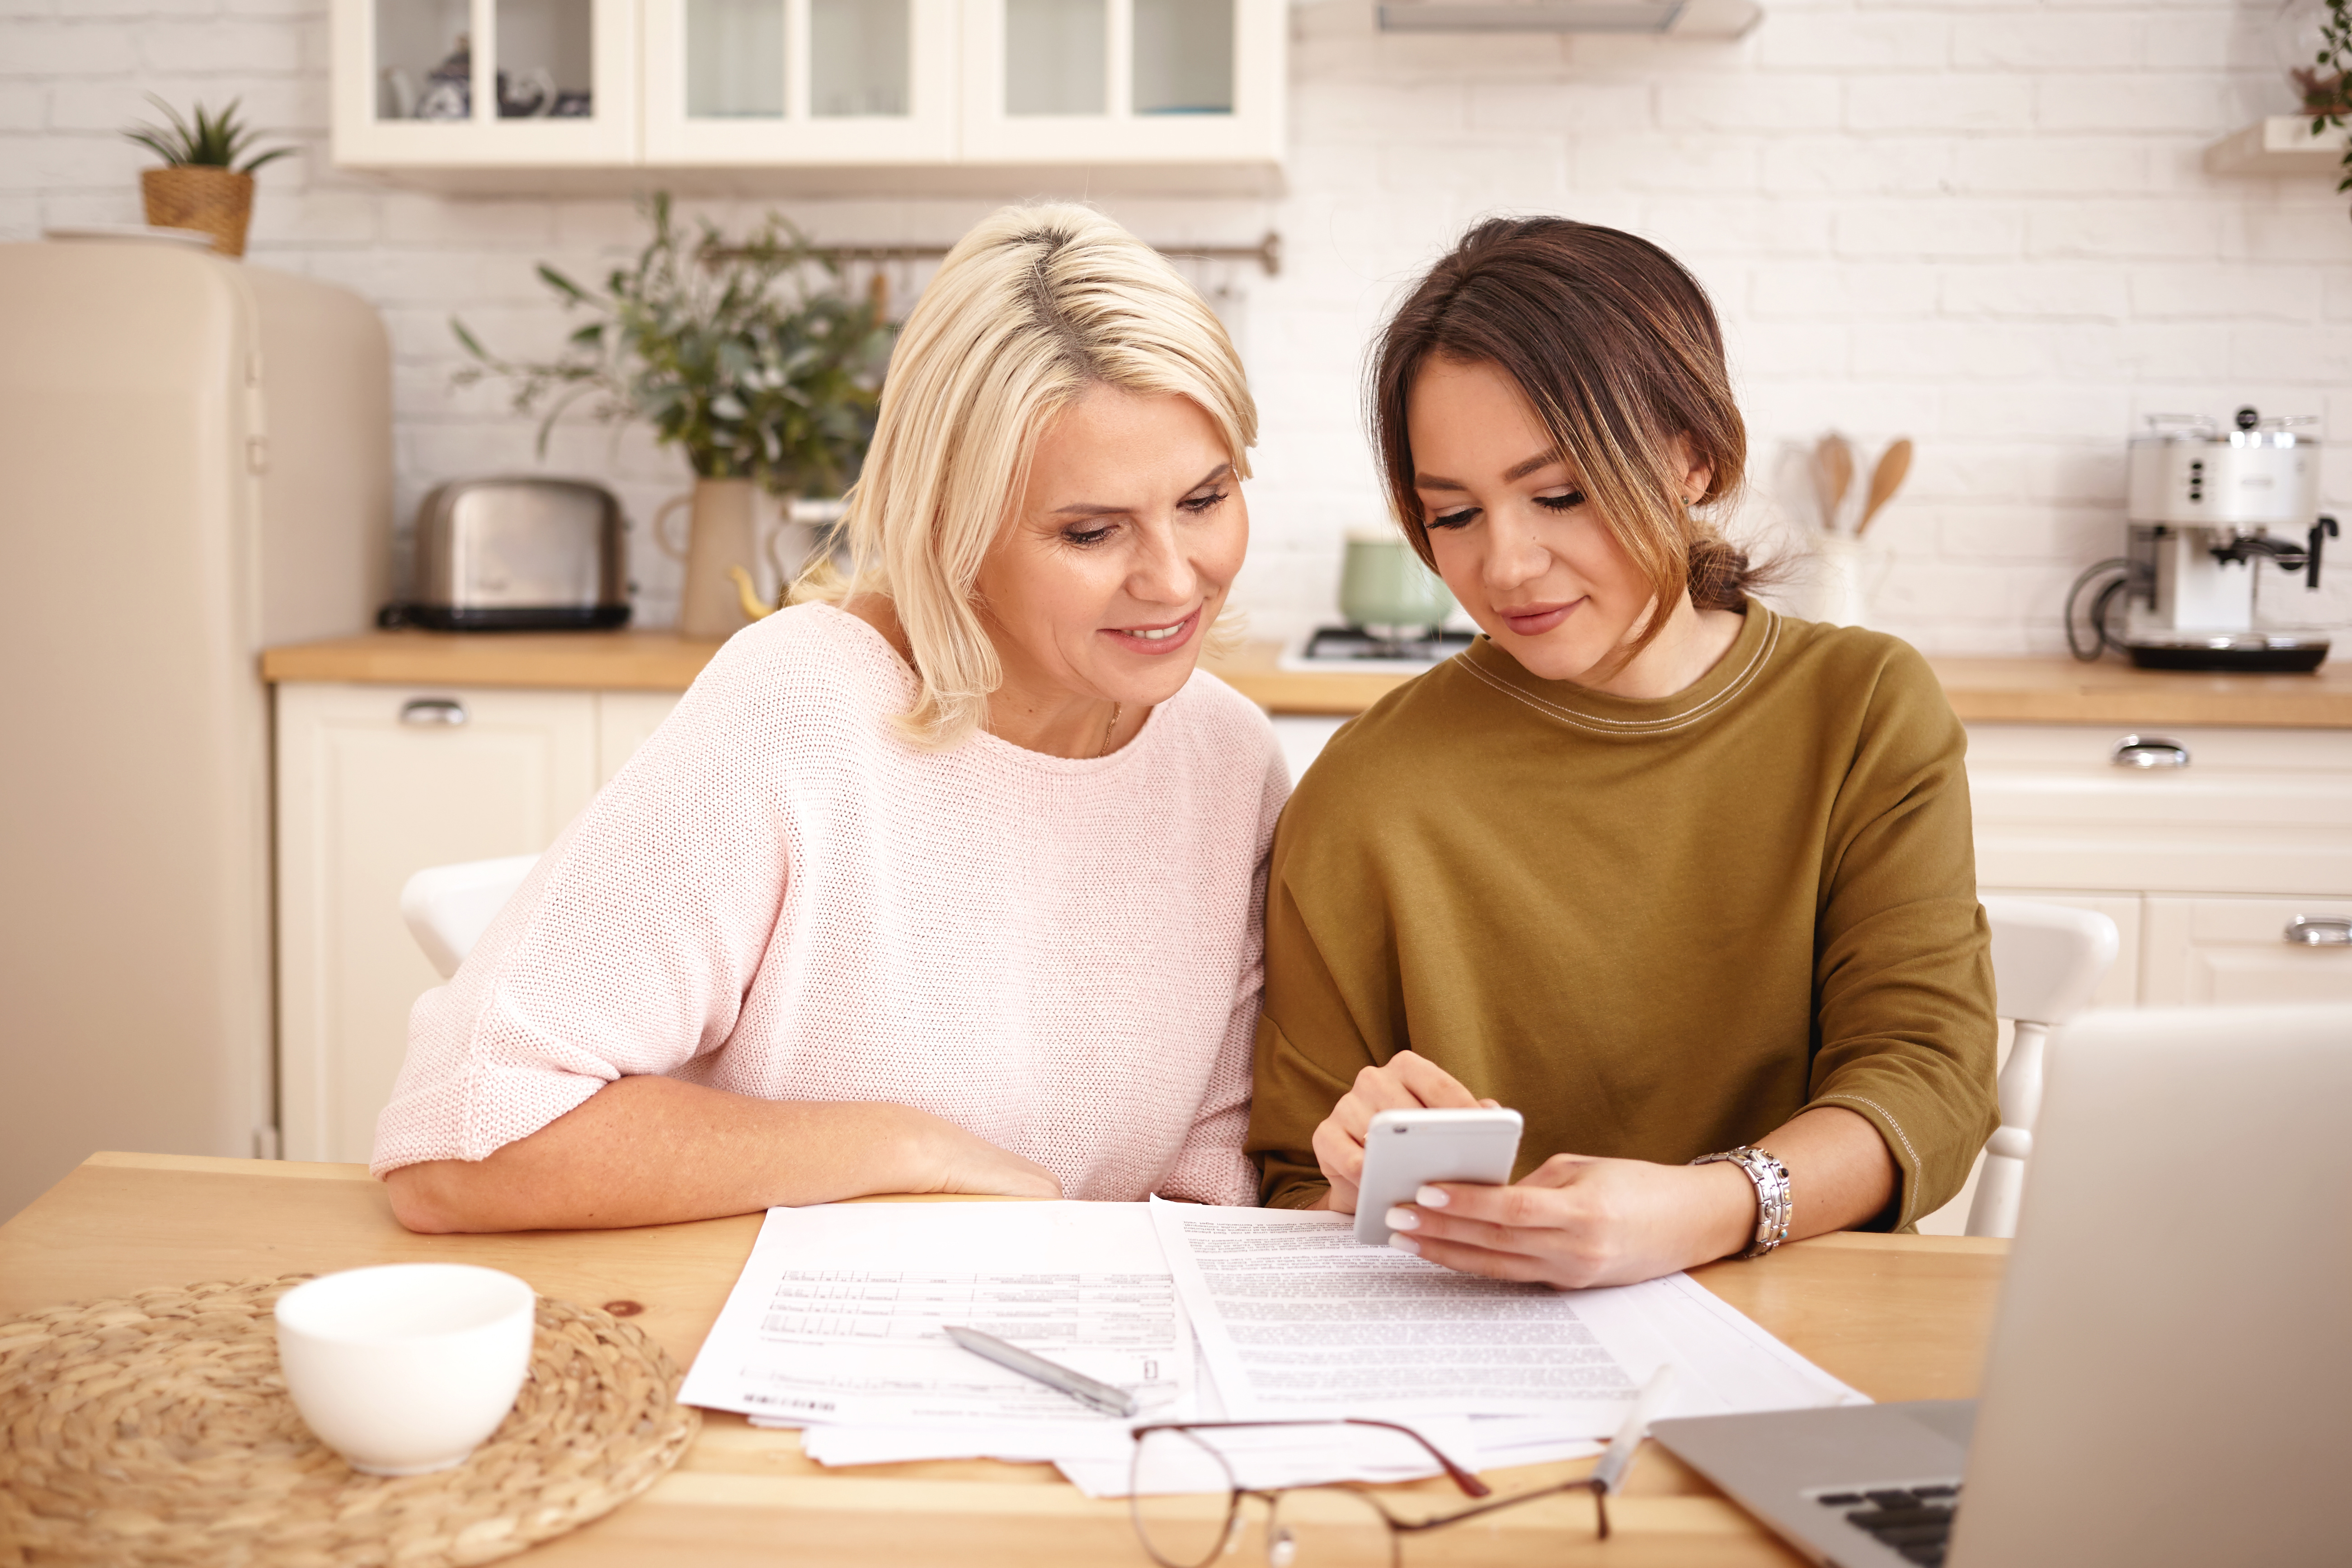 Parent and daughter looking at career options online